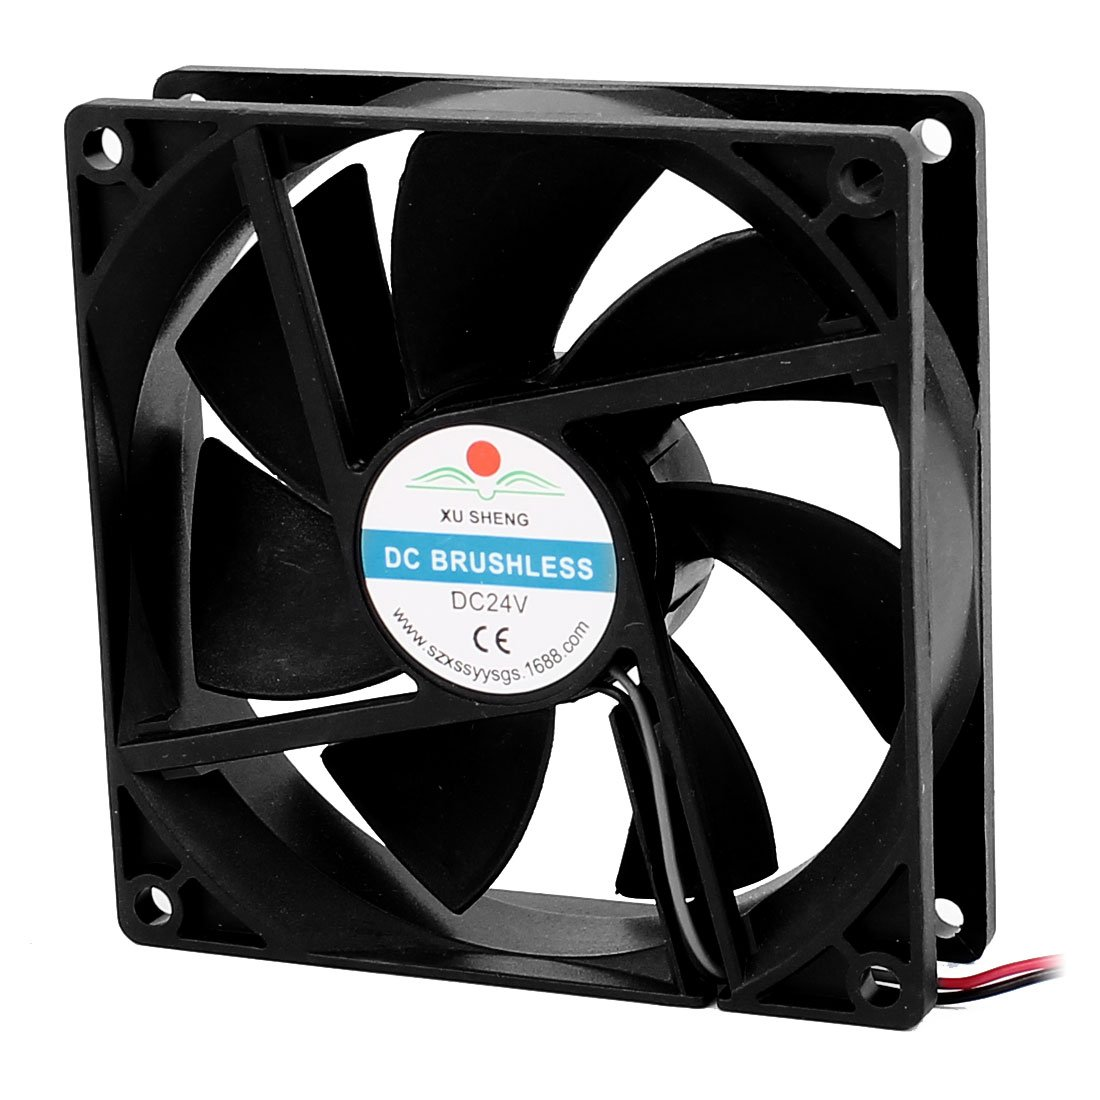 uxcell a16032900ux1695 DC 24V 90mmx90mmx25 mm 7 Vanes Pc CPU Computer Cooling Fan w Metal Finger Guard, 3.54 inches Width, 3.54 inches Length